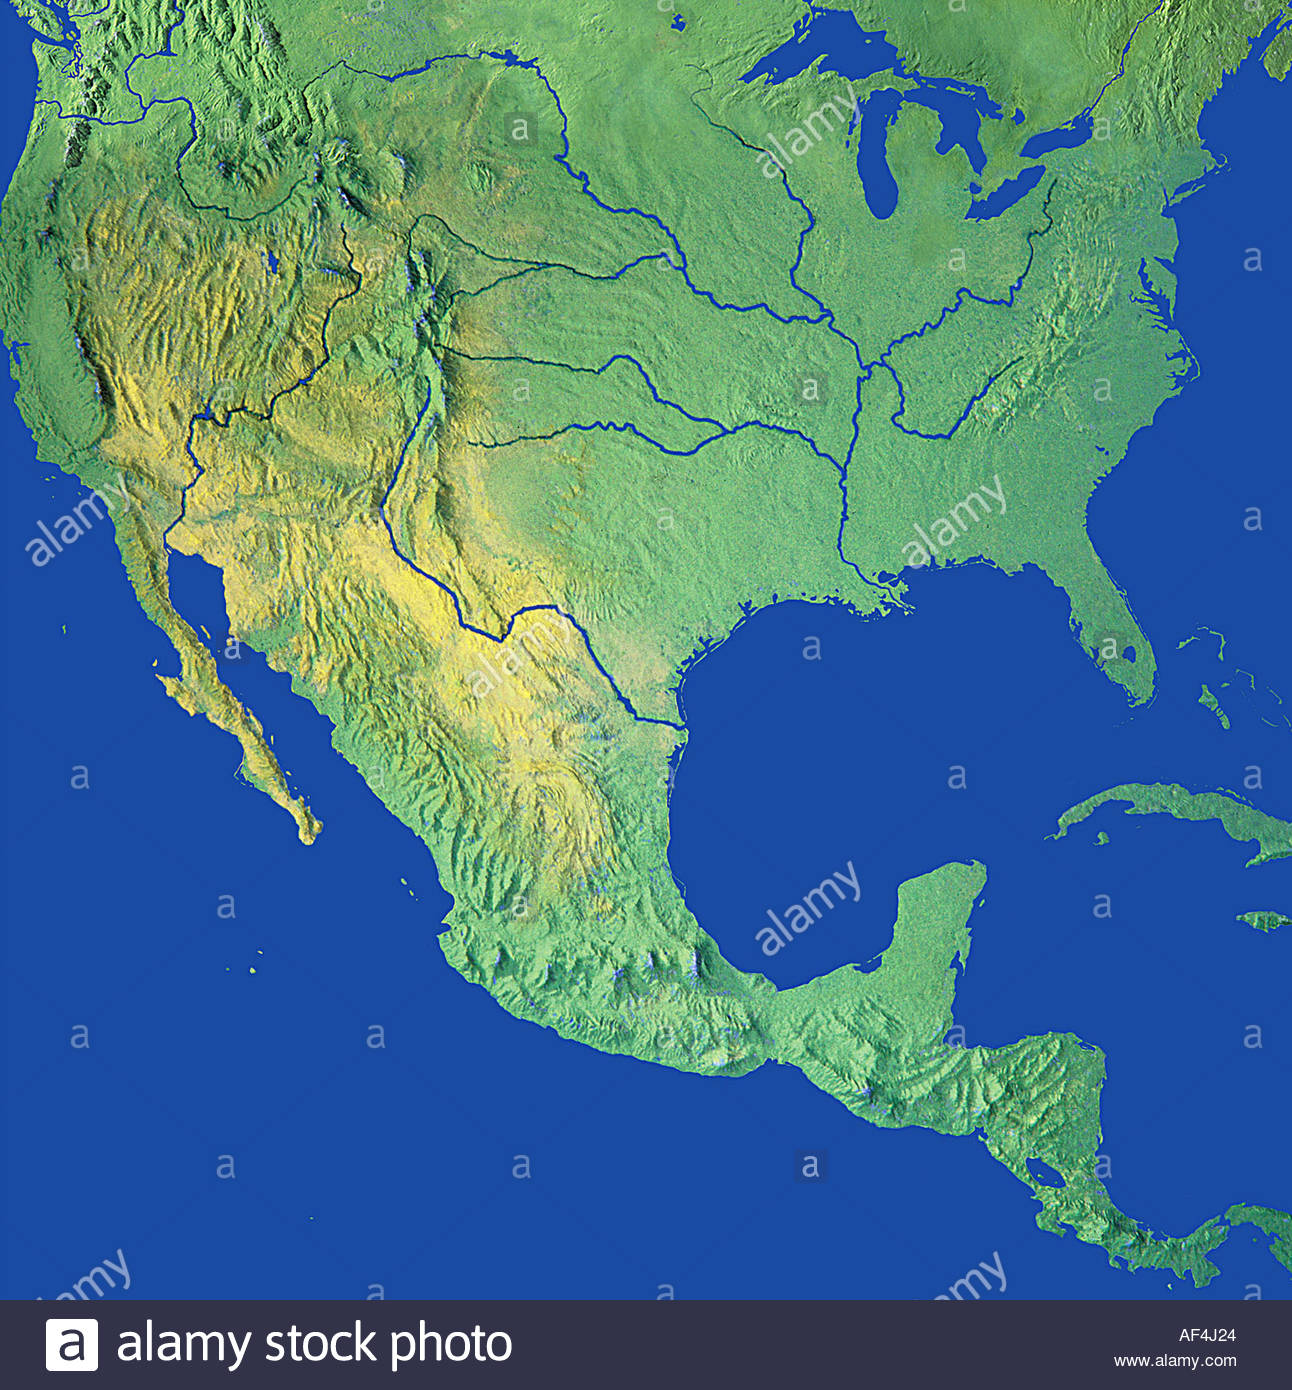 map maps globe globes north america usa canada mexico